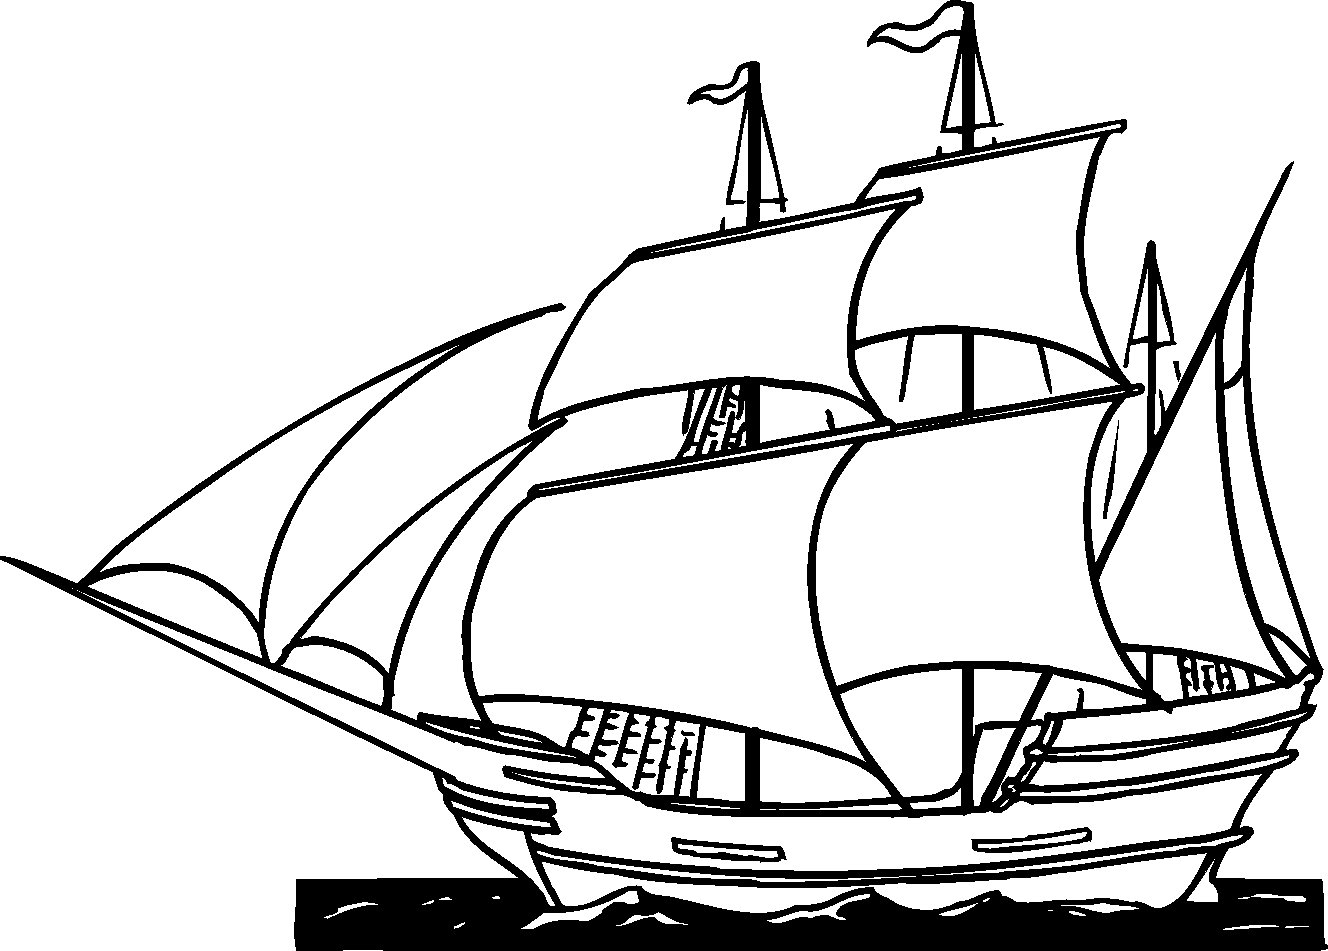 coloring ship for kids cruise ship coloring page for kids transportation coloring ship for kids